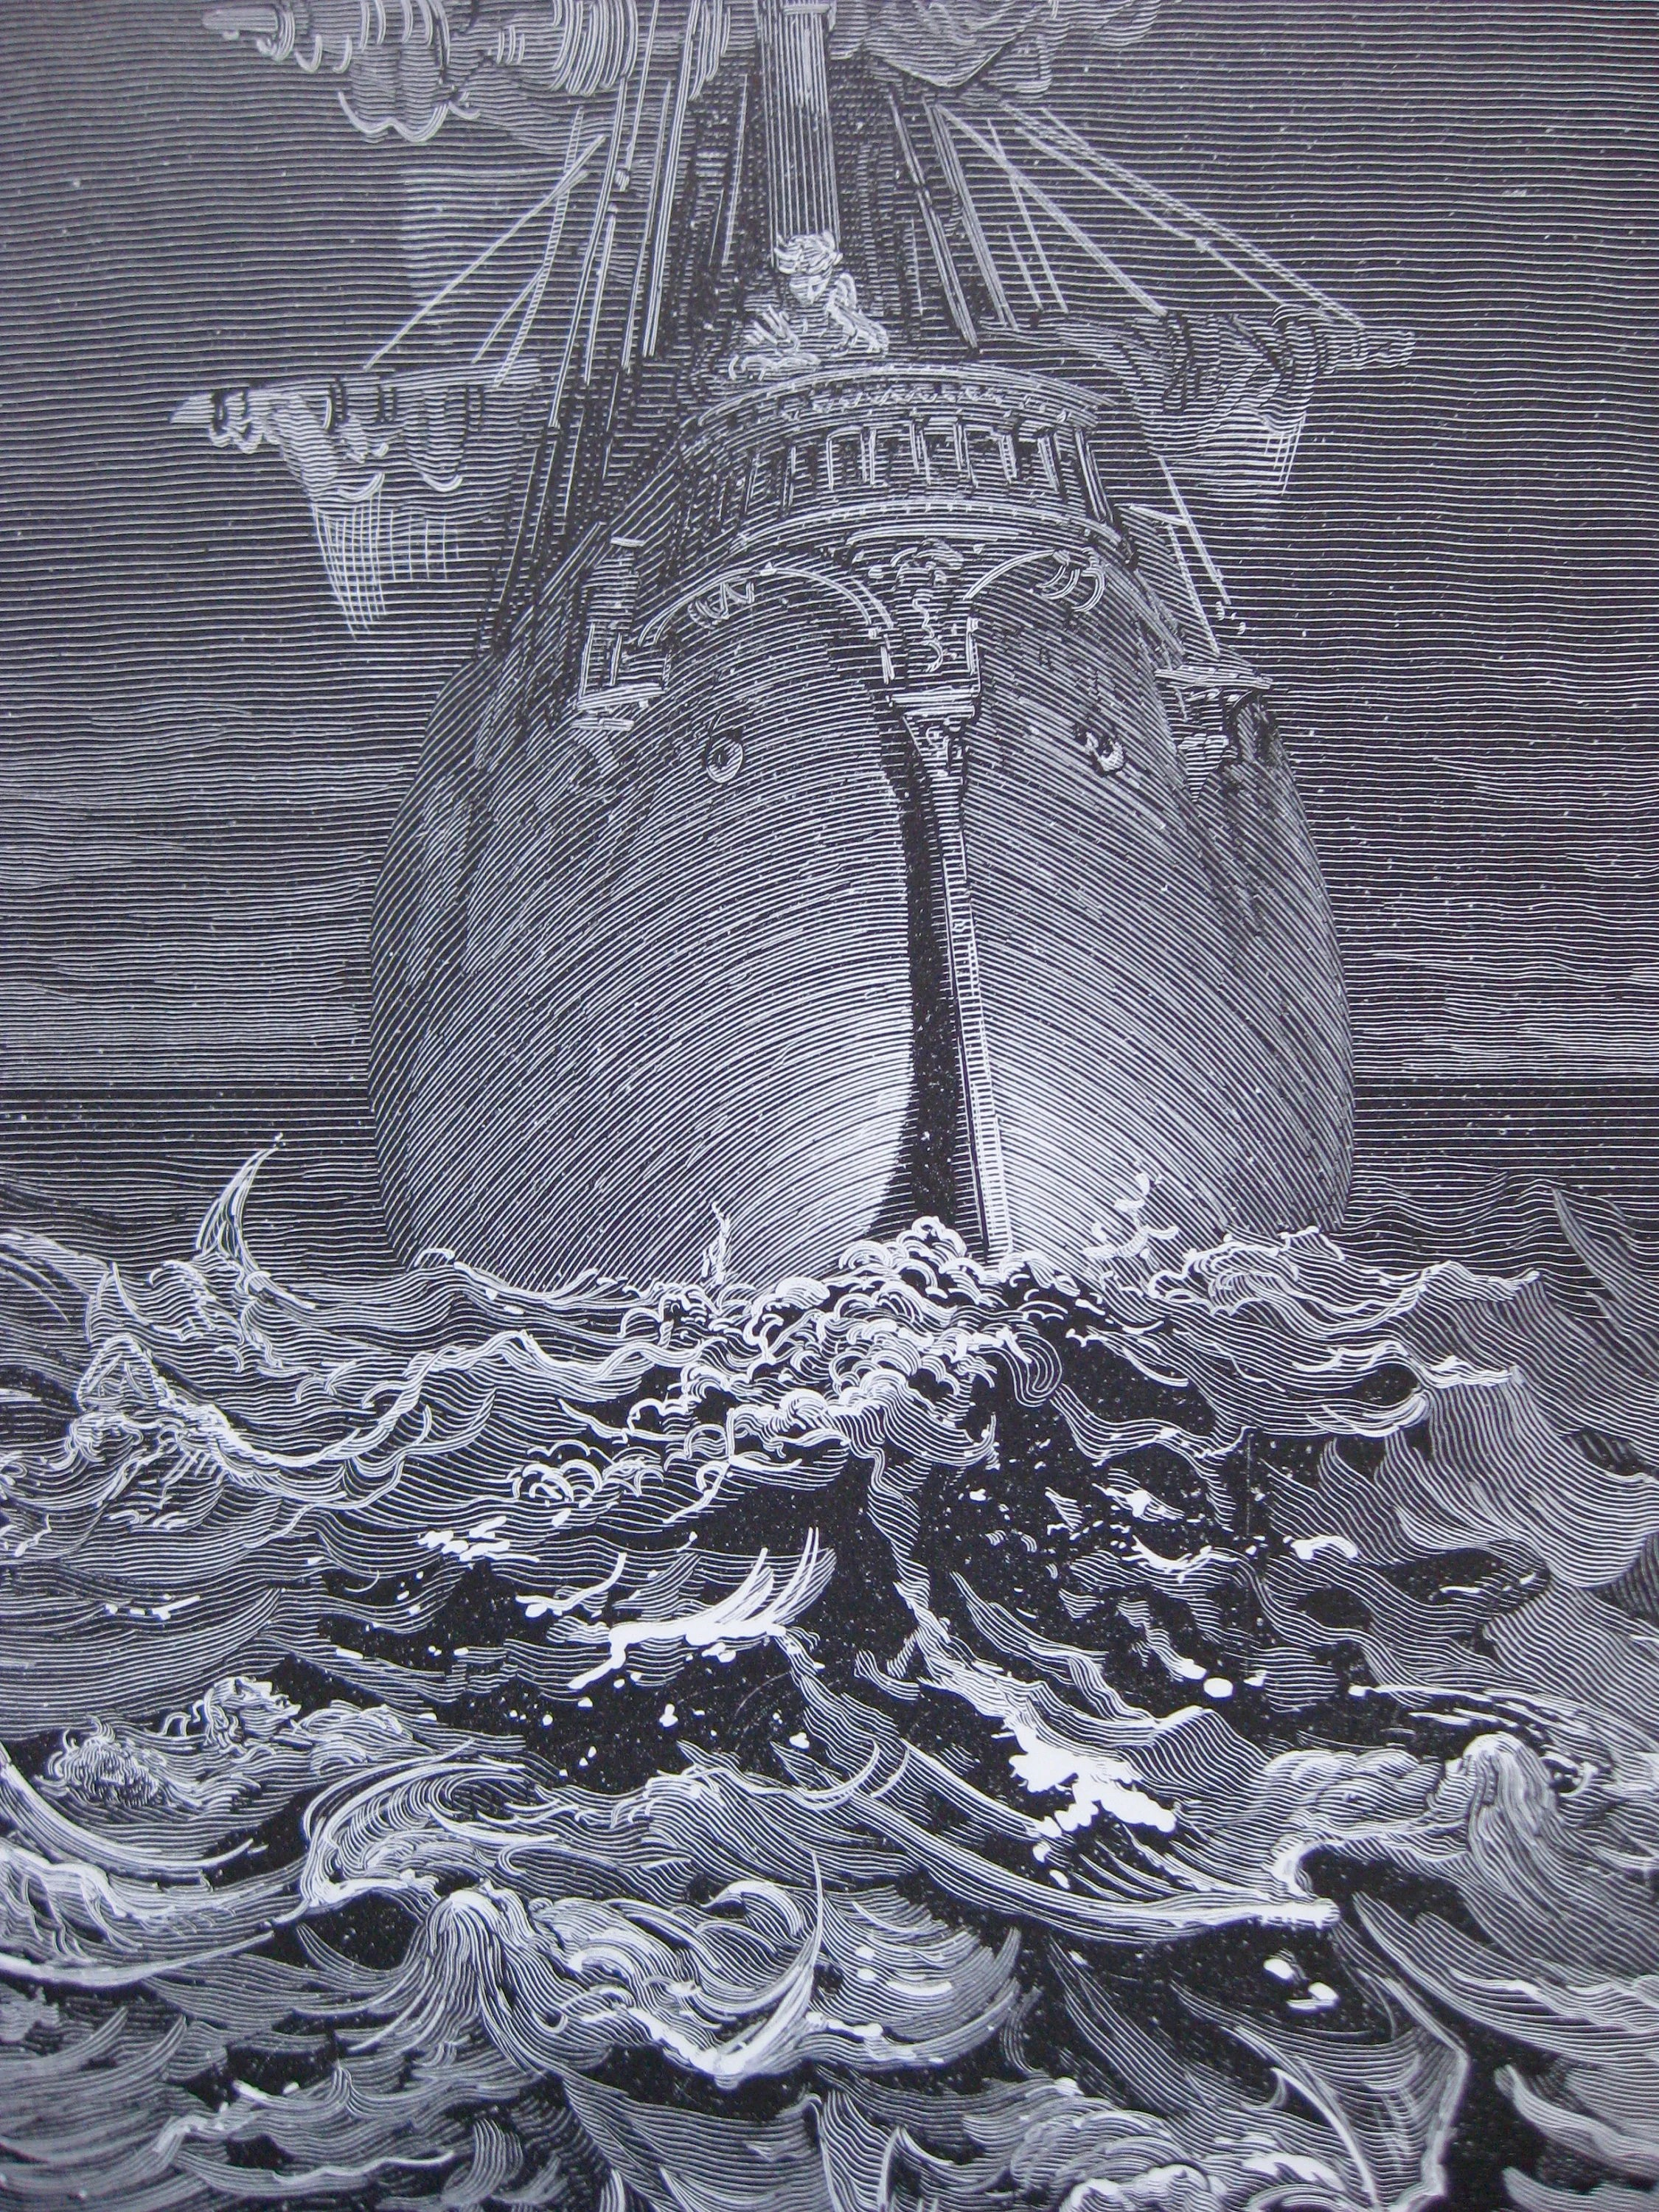 Gustave Dore Ancient Mariner Print 1875 Engraving 30 X 22 Cm Great For Framing